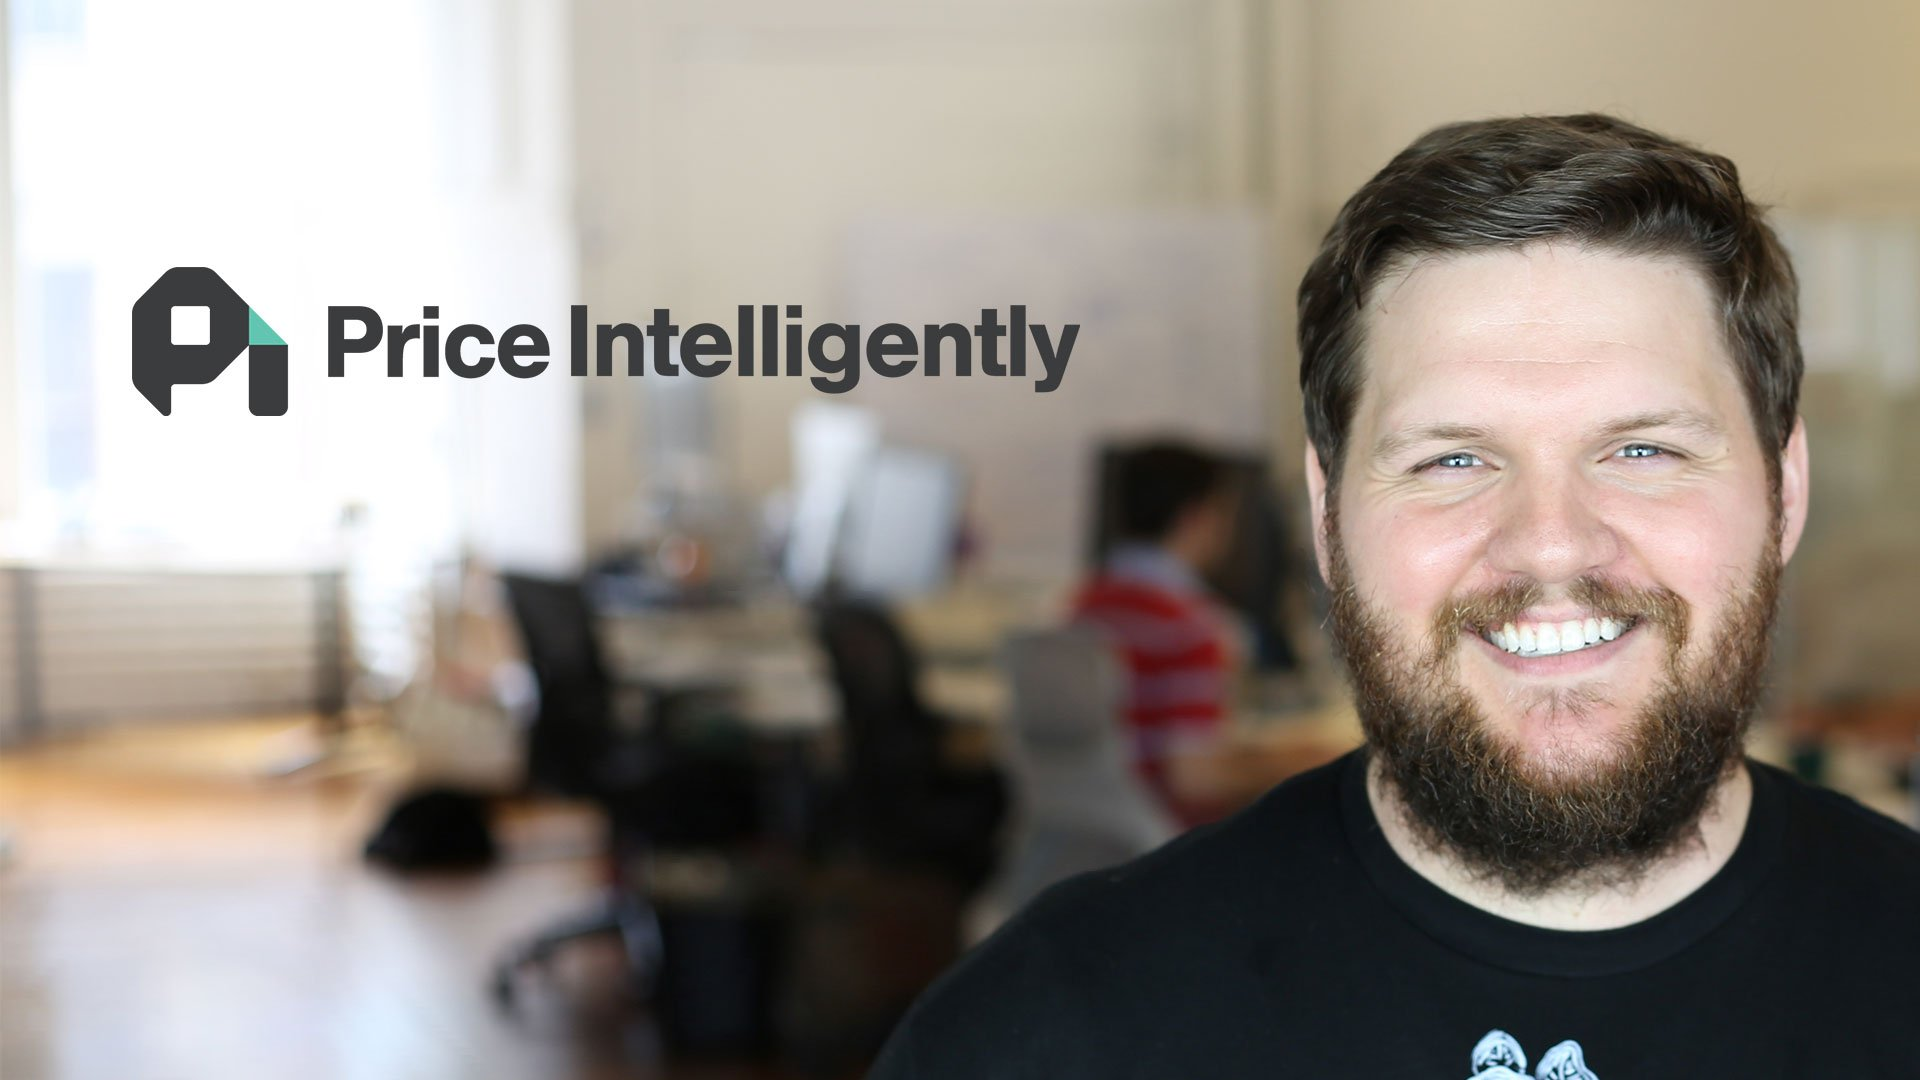 Building a Successful Startup: Tips from Patrick Campbell, Co-Founder & CEO of Price Intelligently